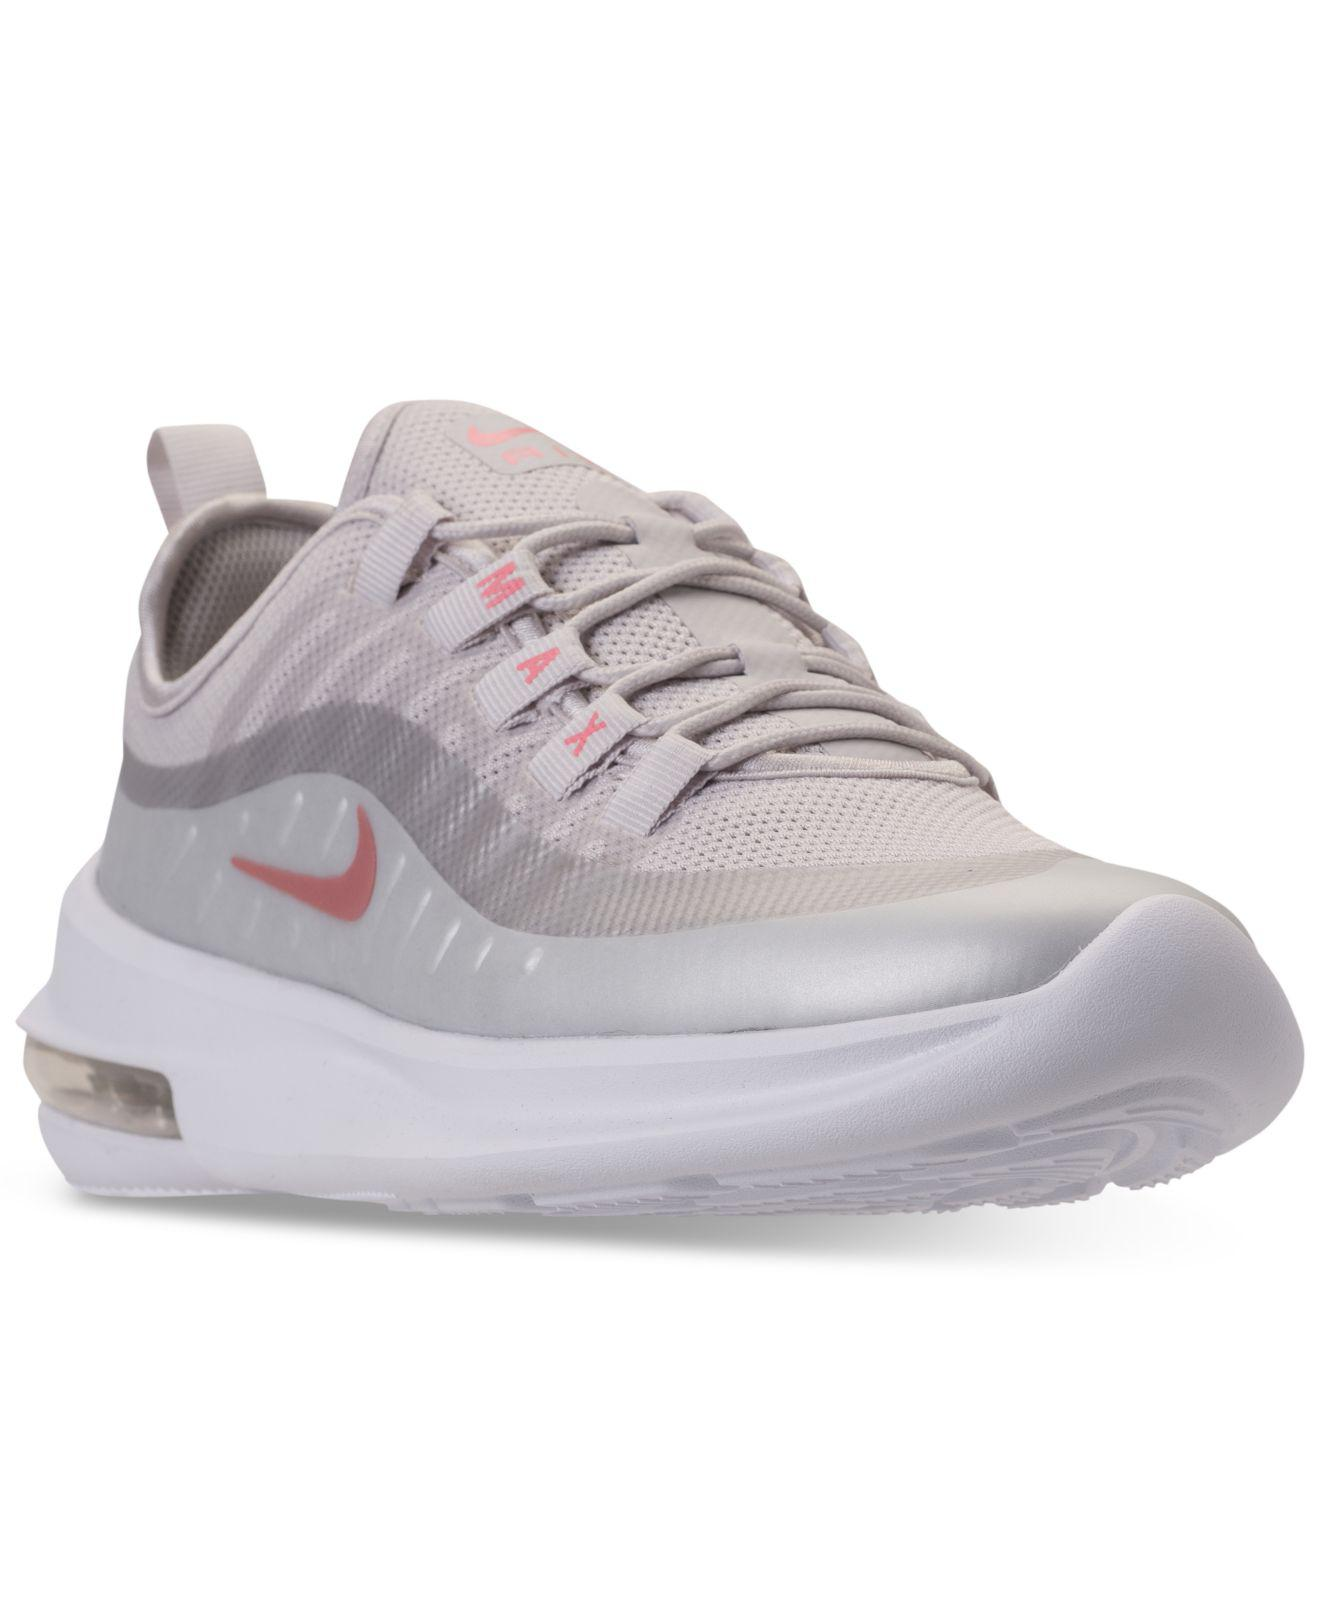 4b50a3ce5a52 Lyst - Nike Air Max Axis Casual Sneakers From Finish Line in Gray